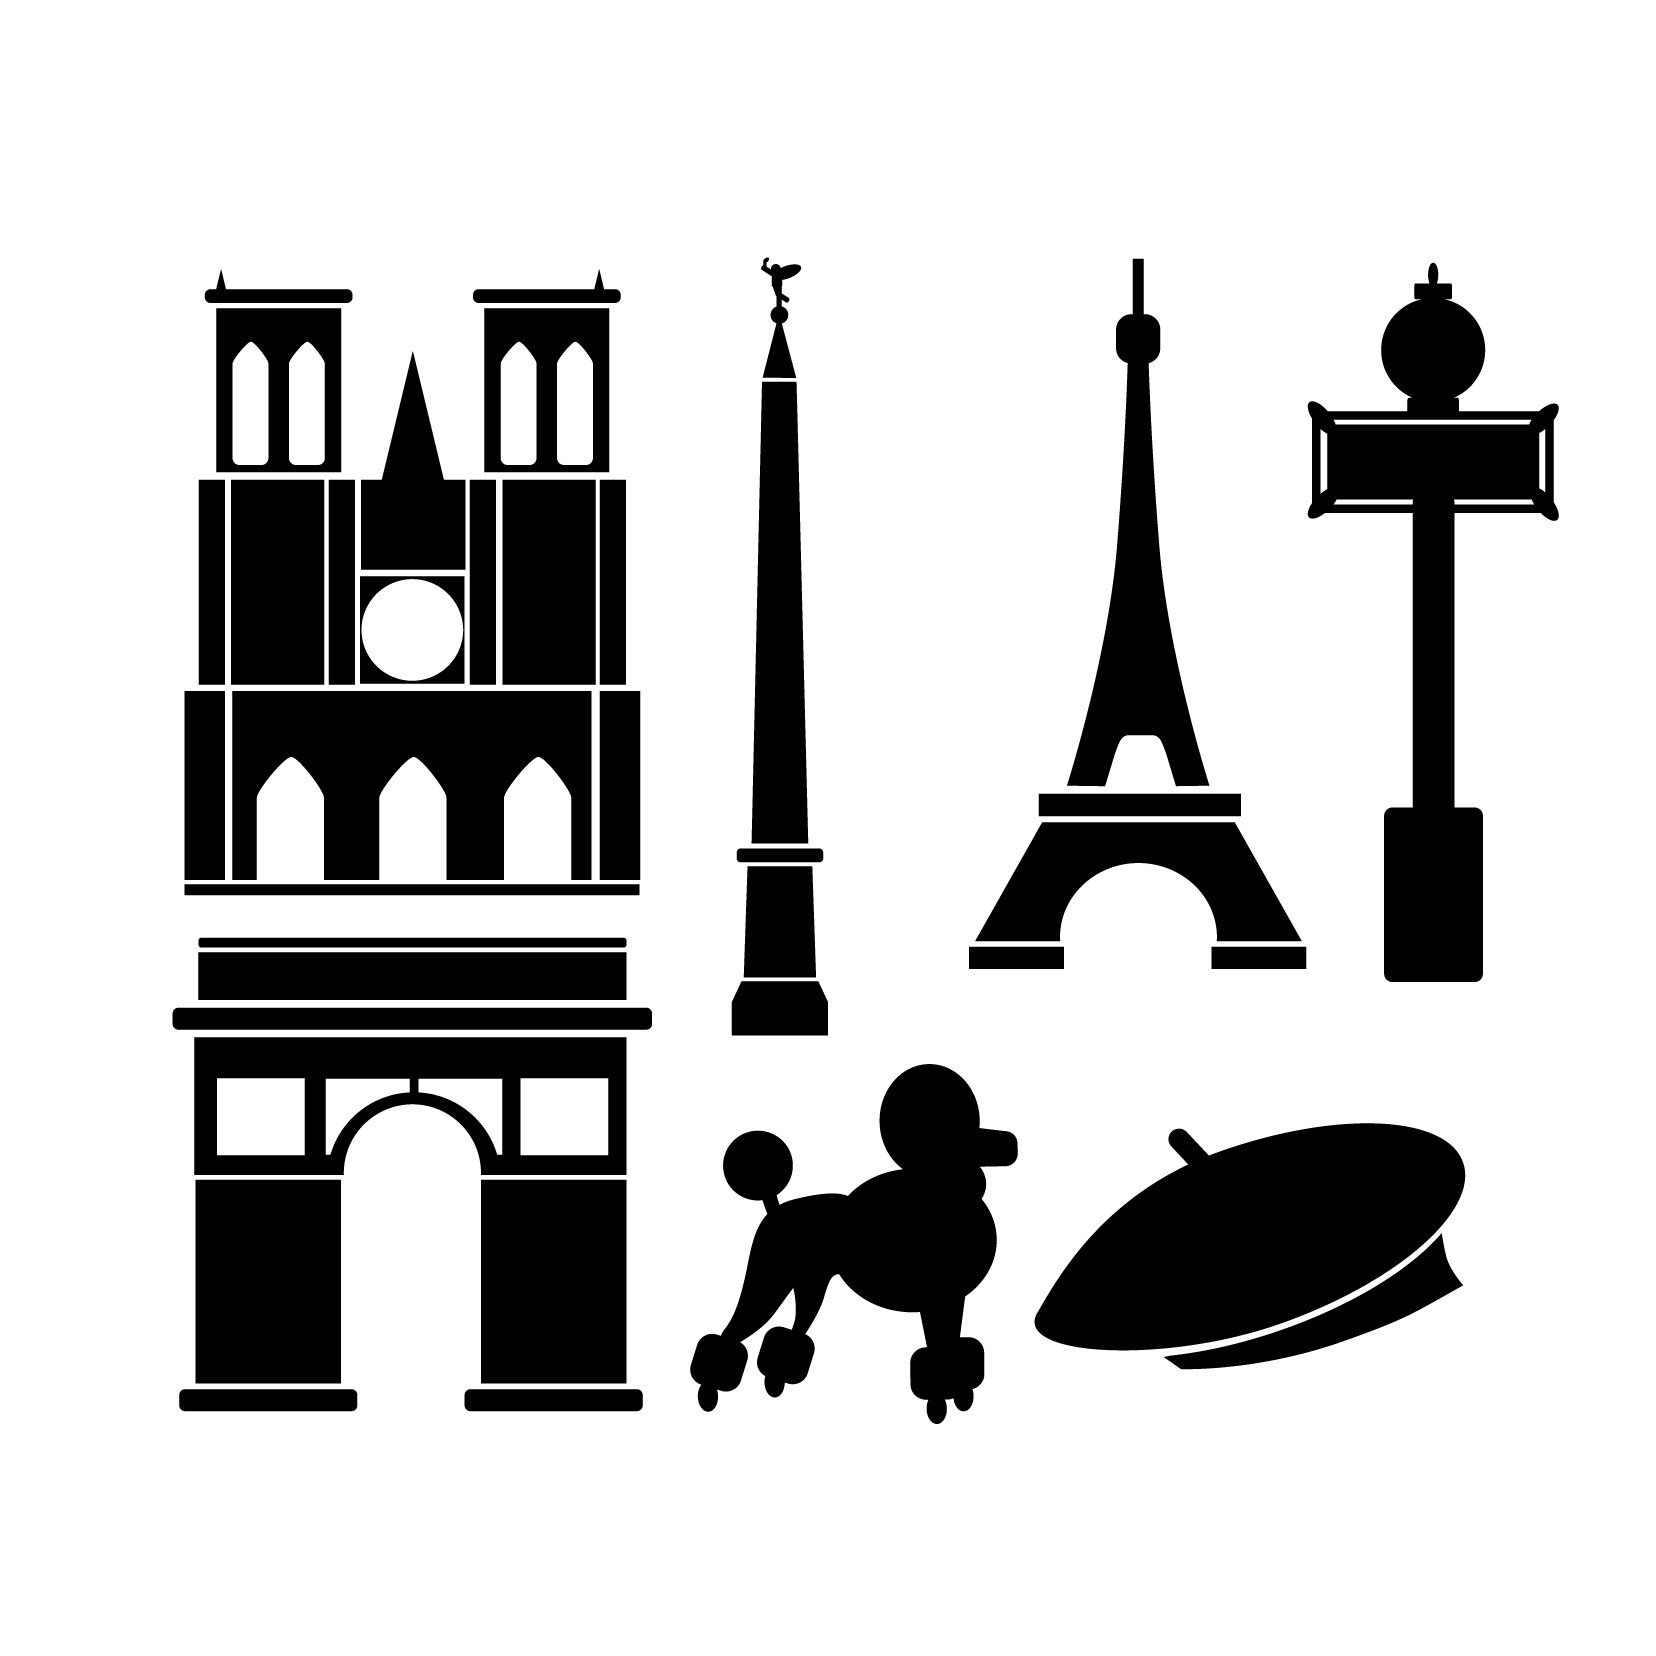 Paris Icons - 5 sets, 35 icons - Vinyl Wall Art Decal for Homes, Offices, Kids Rooms, Nurseries, Schools, High Schools, Colleges, Universities, Interior Designers, Architects, Remodelers